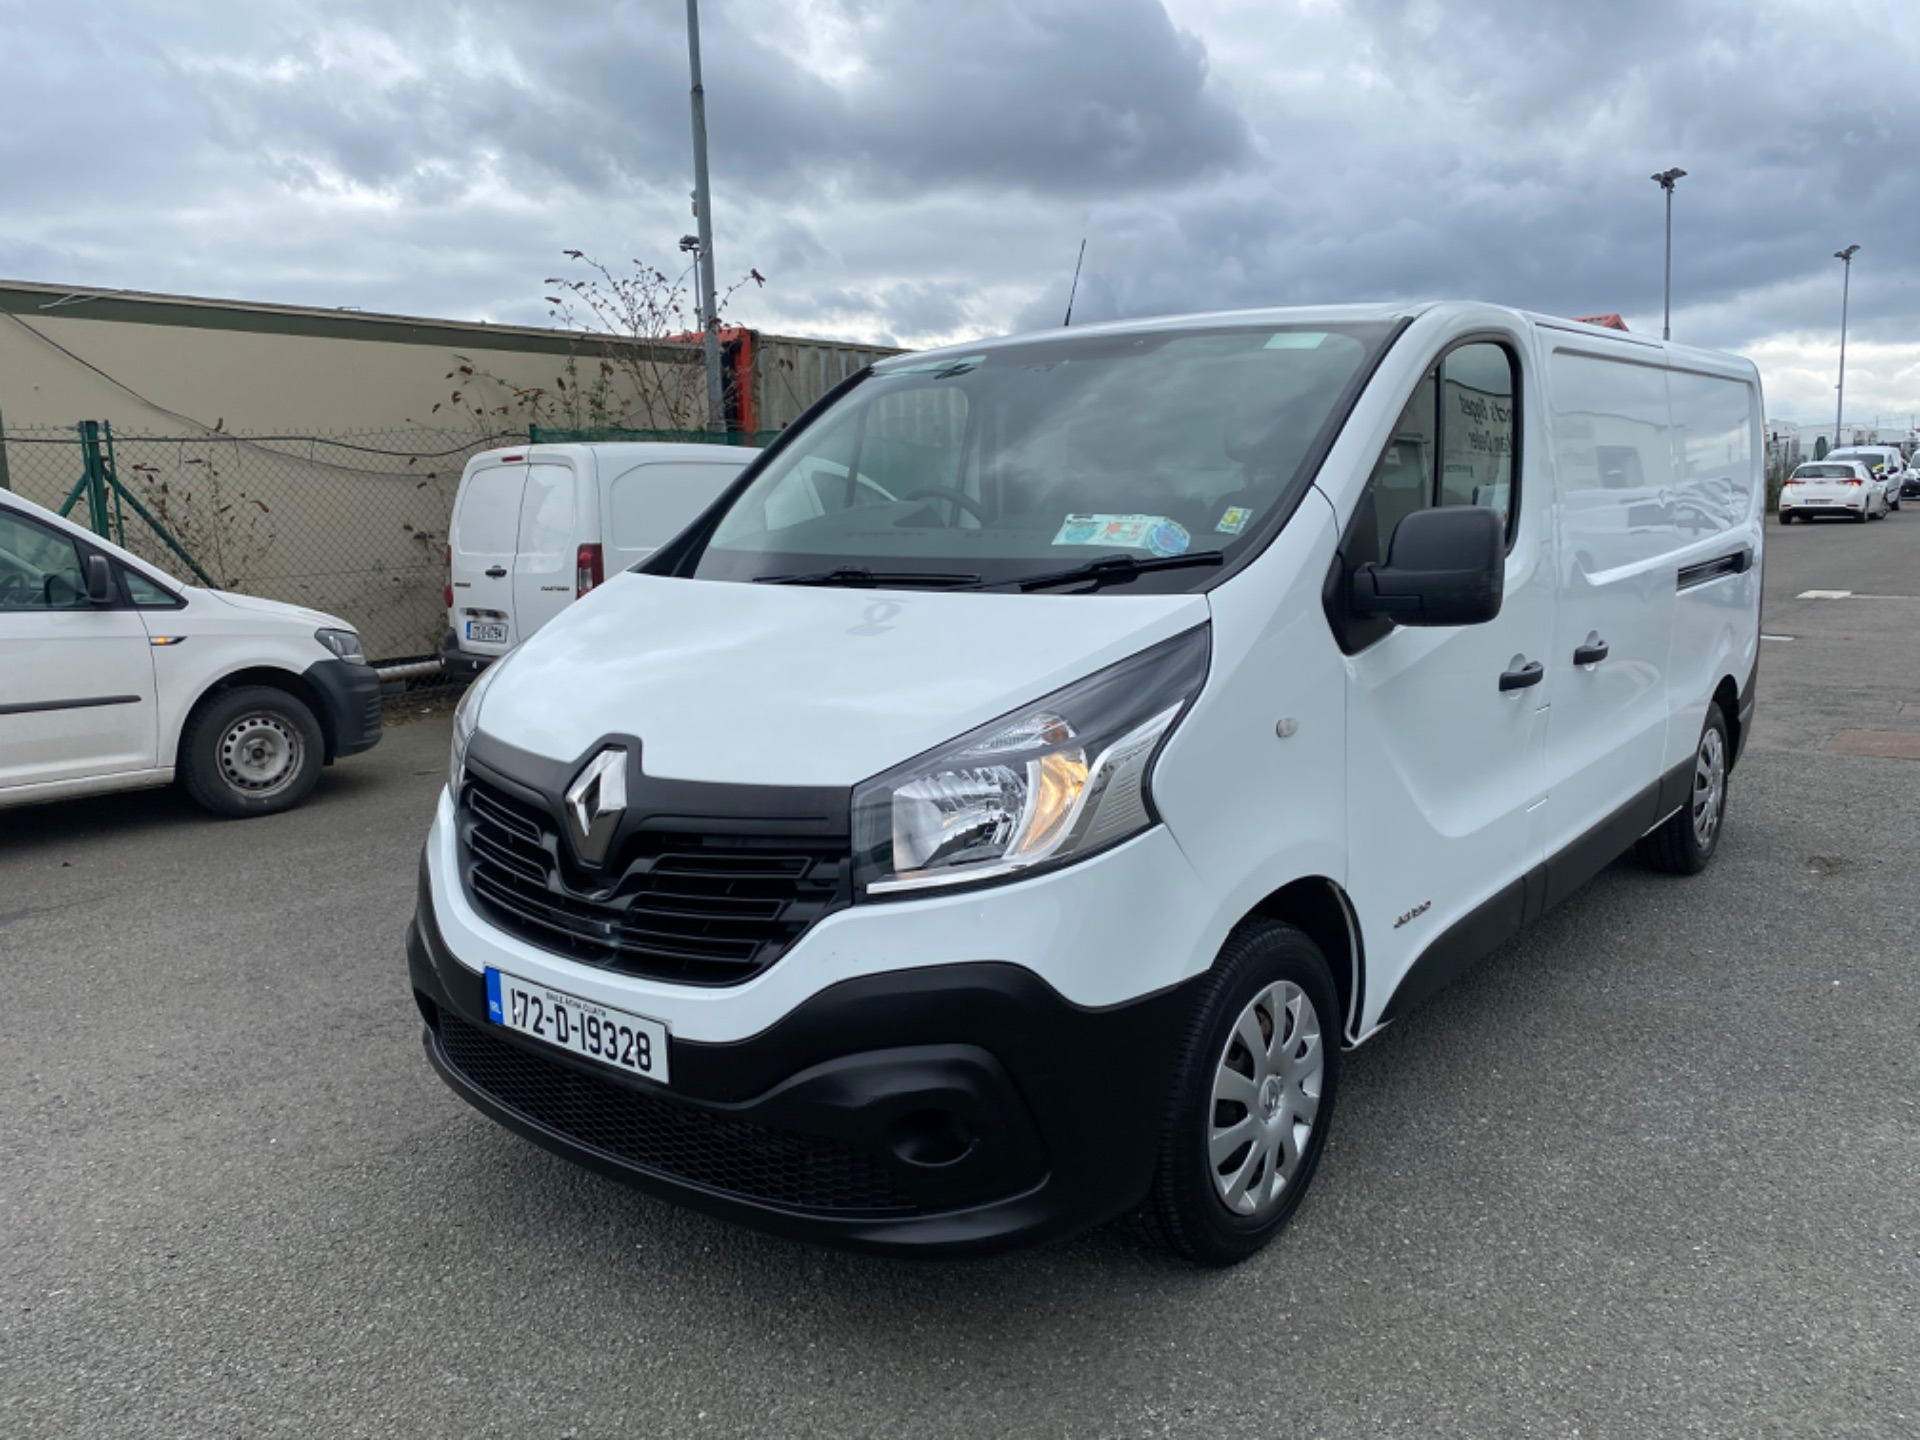 2017 Renault Trafic LL29 DCI 120 Business 3DR (172D19328) Image 3